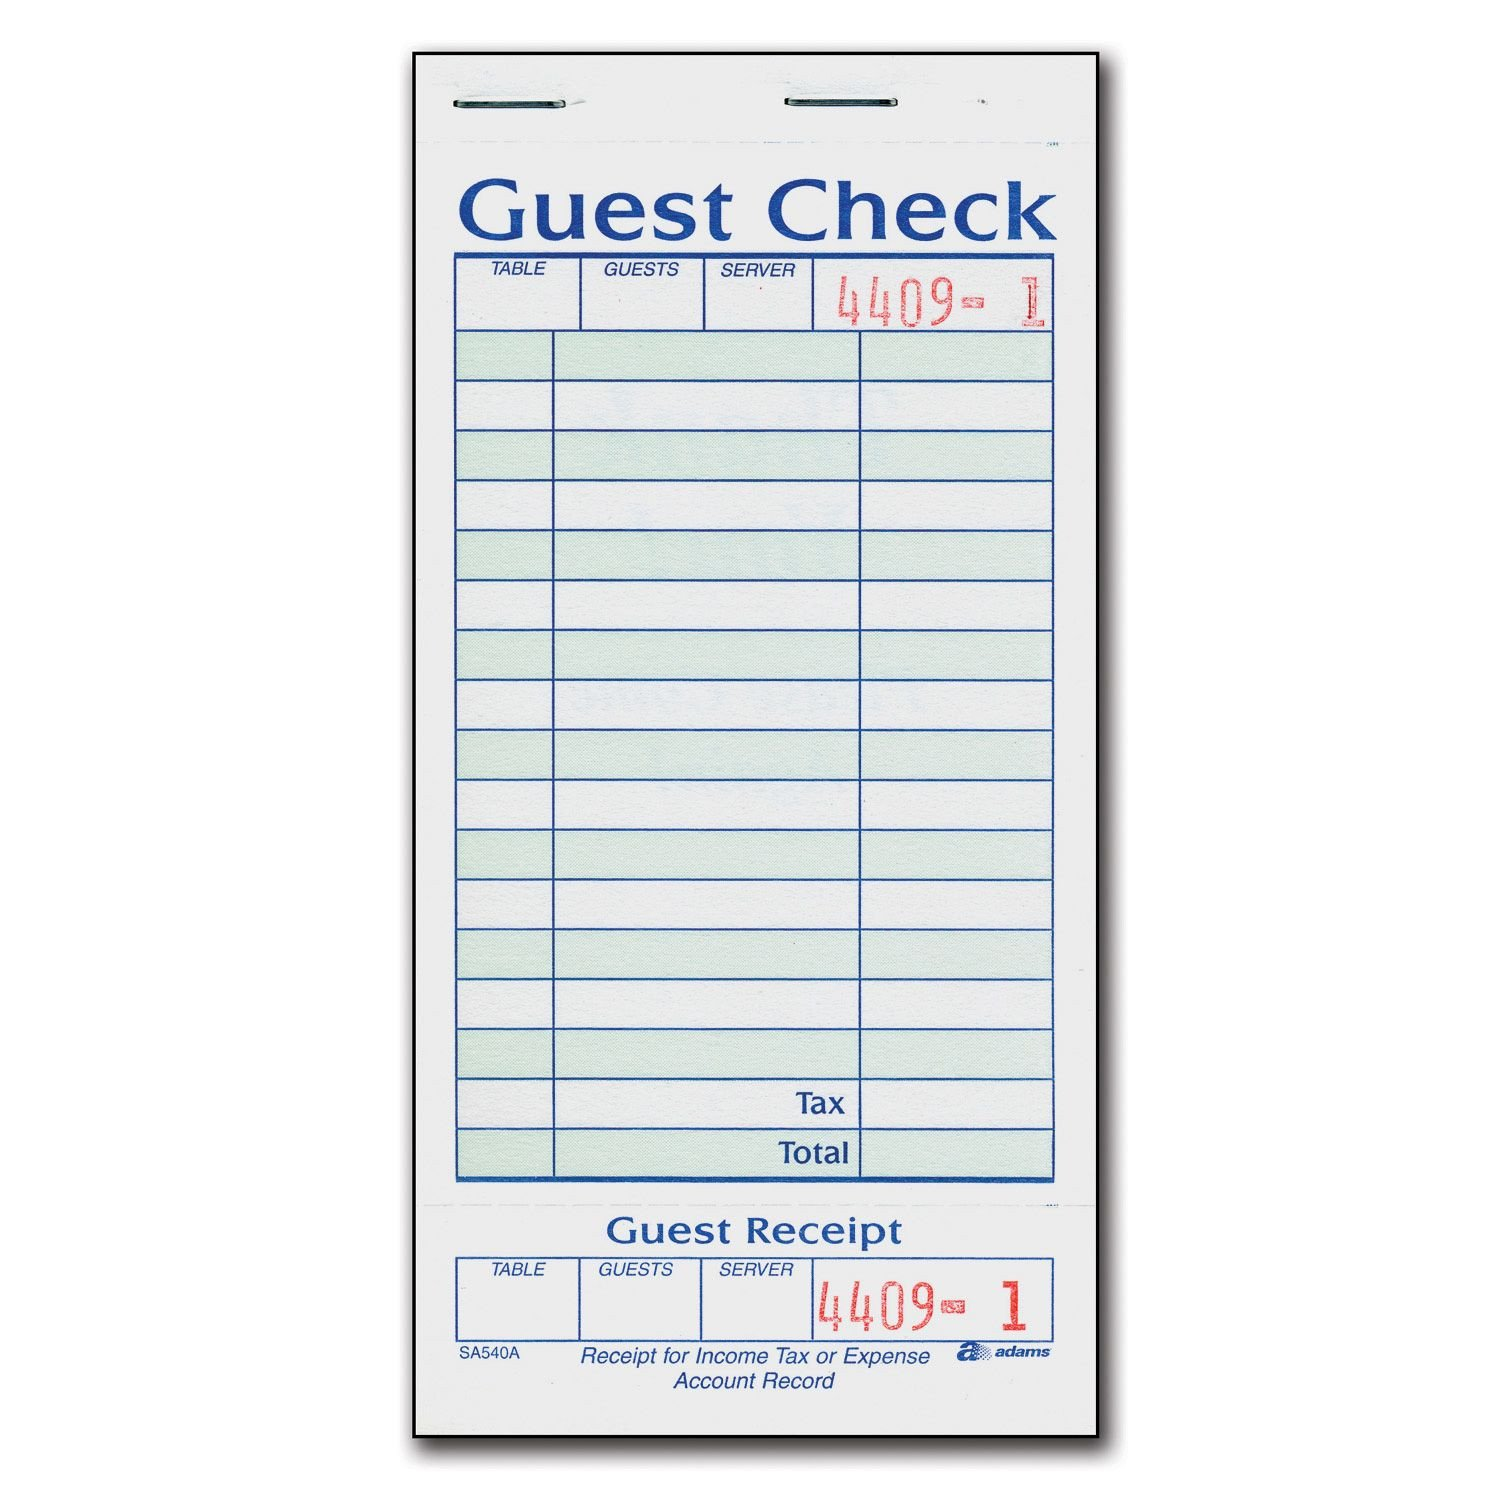 Restaurant Guest Check Template 1 Part Guest Check with Stub 20 Books 50 Checks